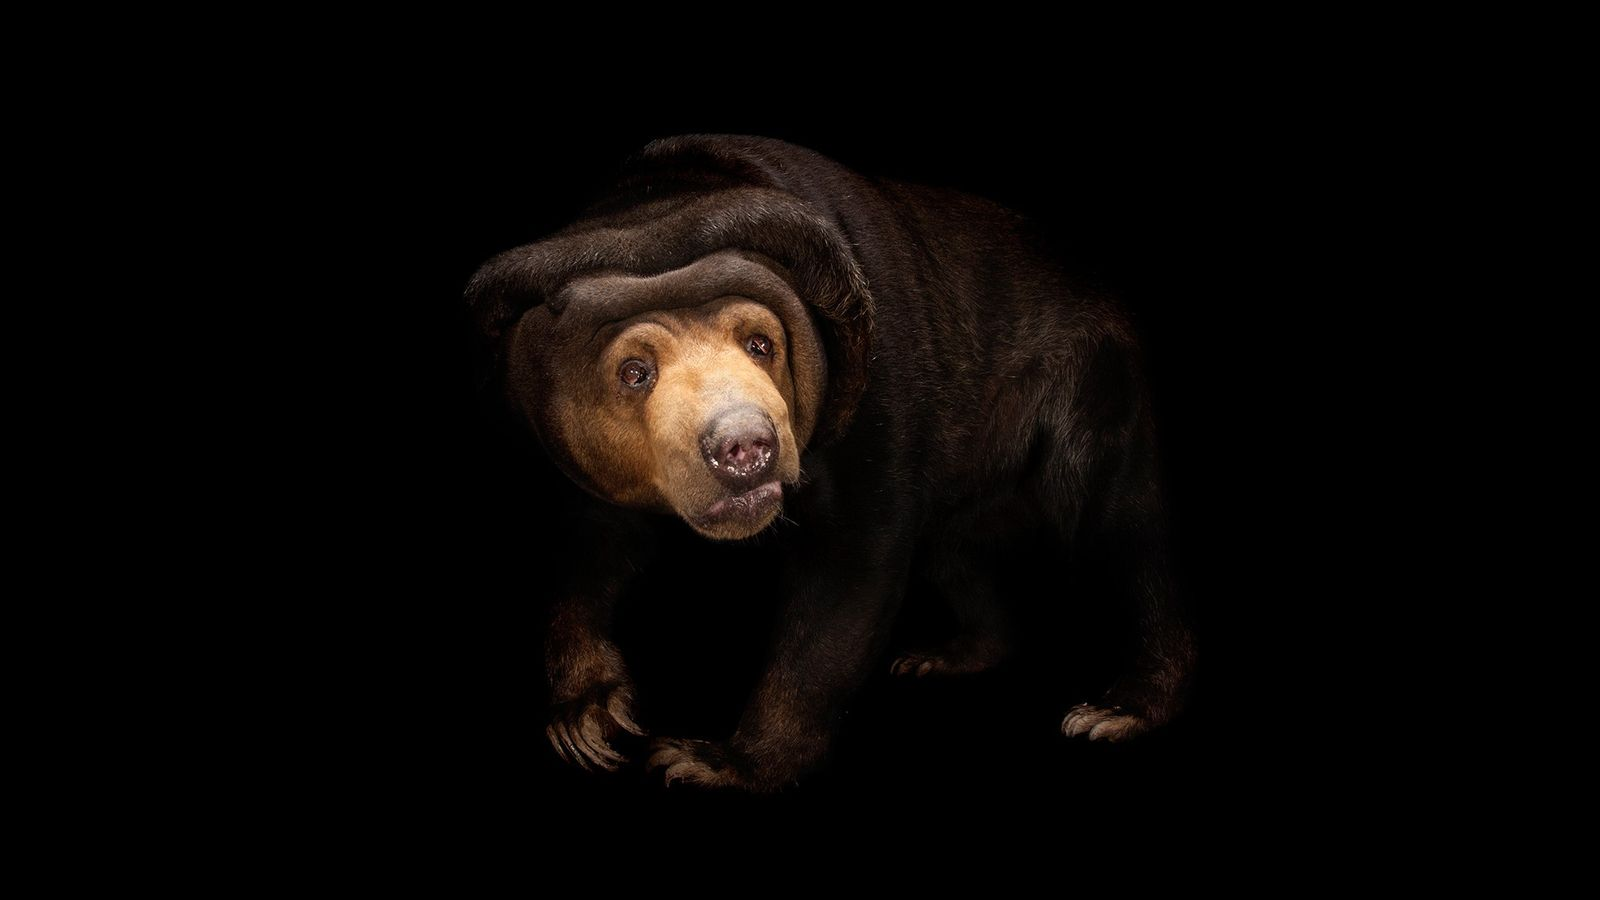 Sun bears are masterful copycats of other sun bears' expressions, with facial mimicry skills once thought ...